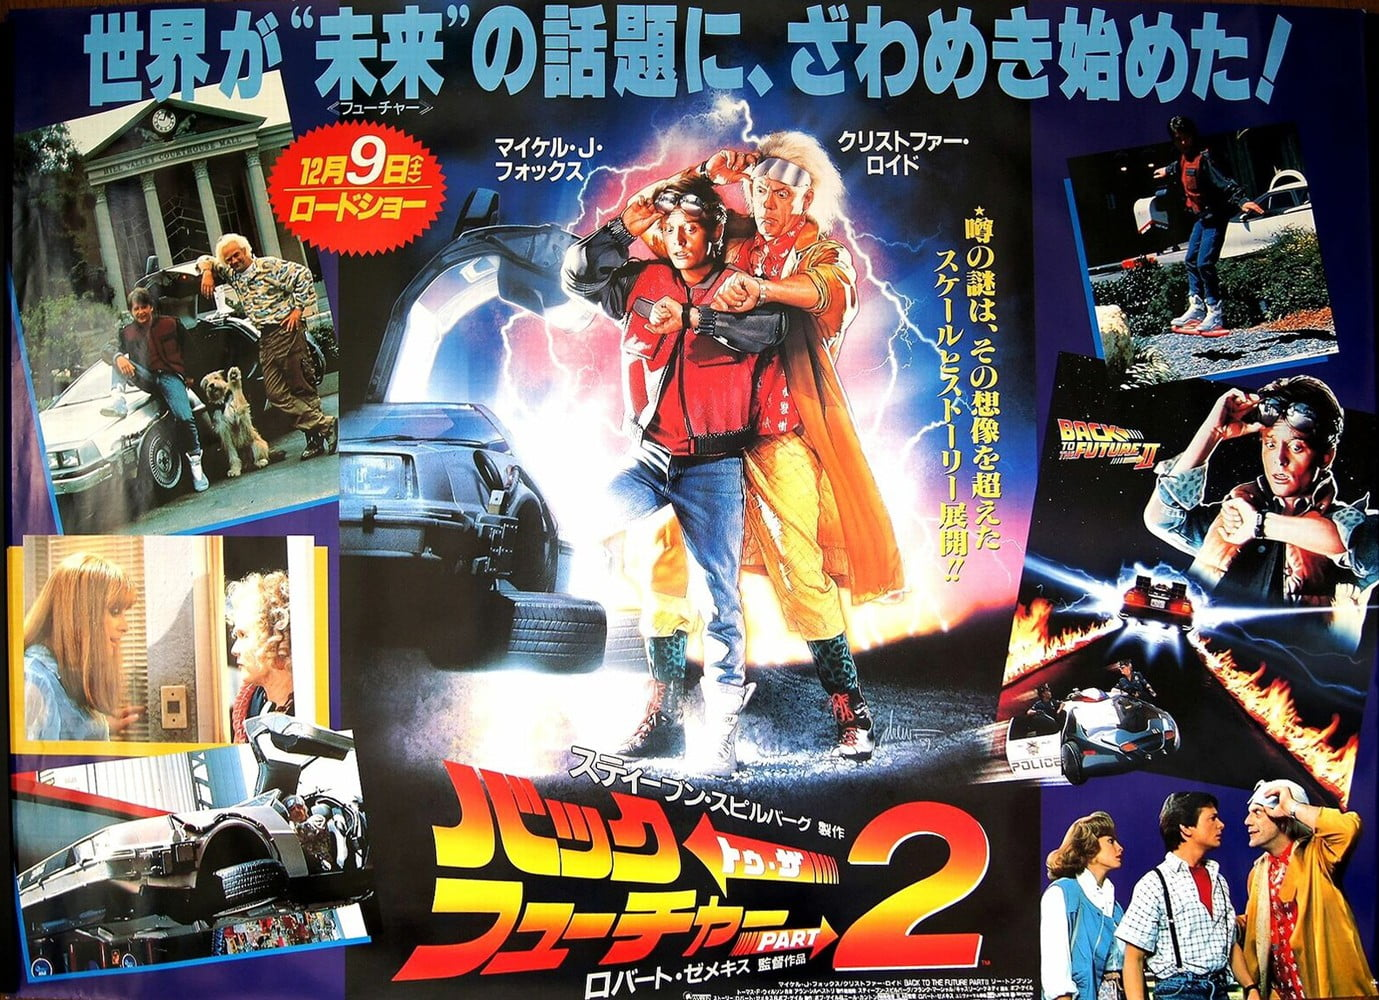 Backtothefuture233